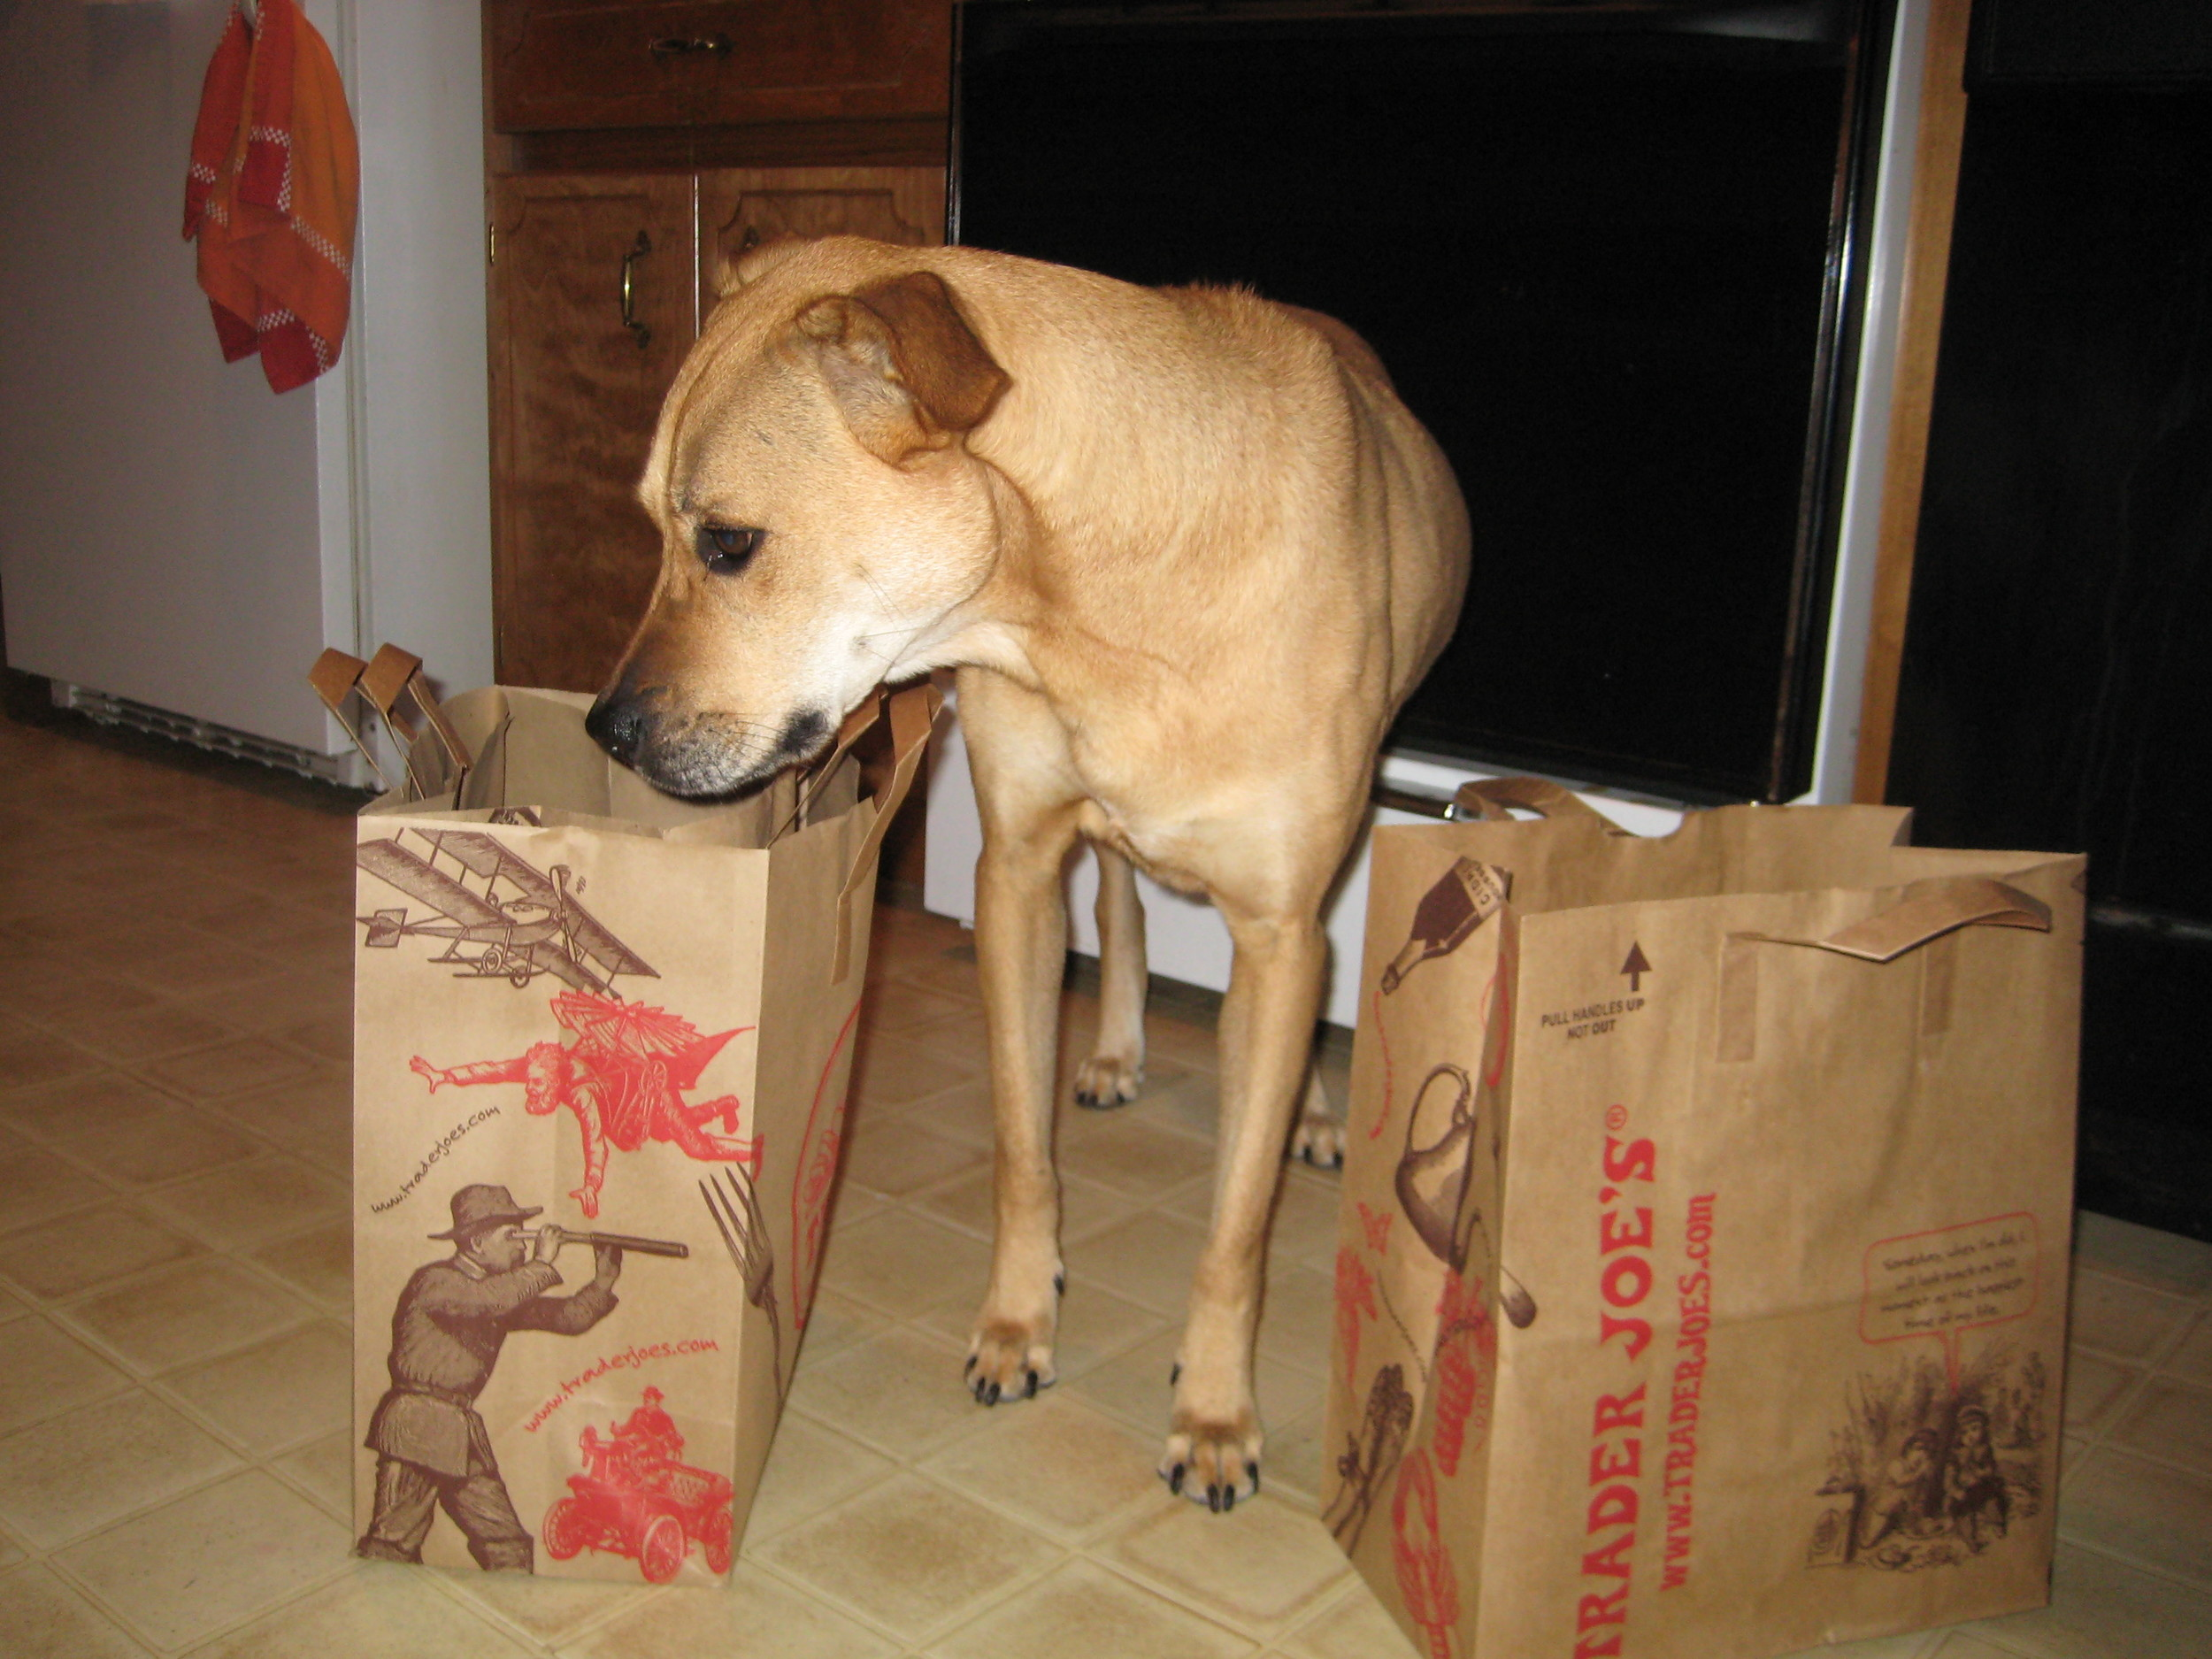 helping to unload the groceries